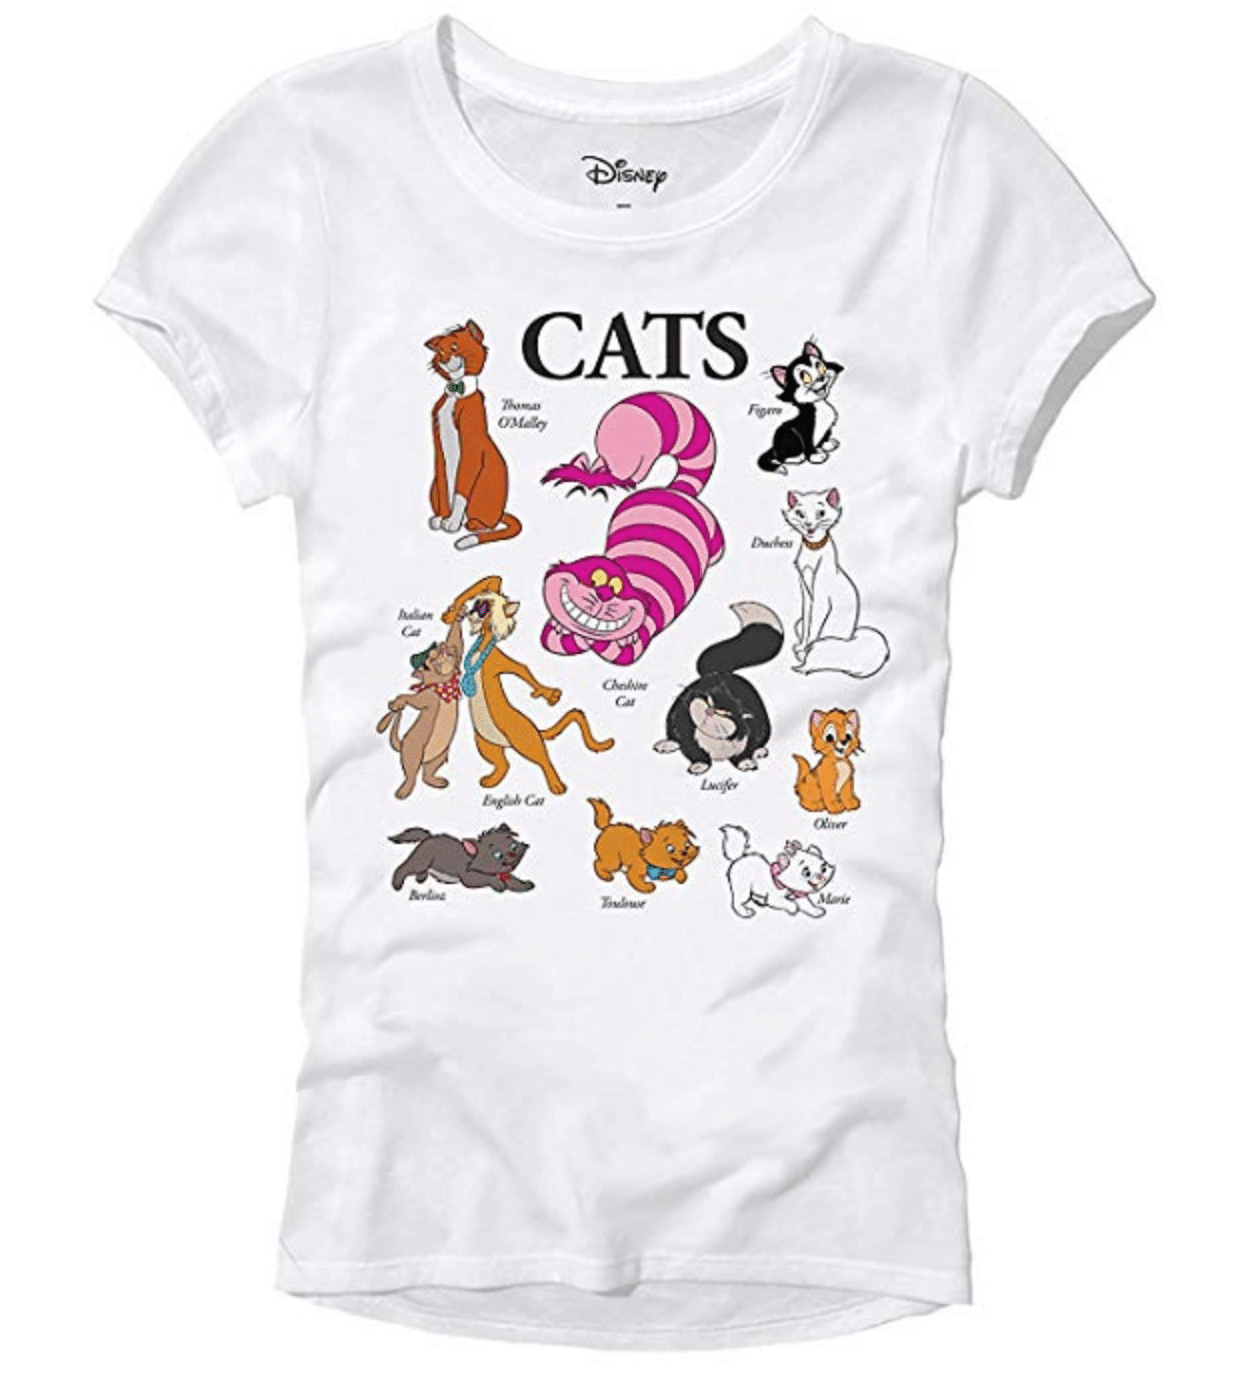 The Purrrfect Disney Cat Gifts 18